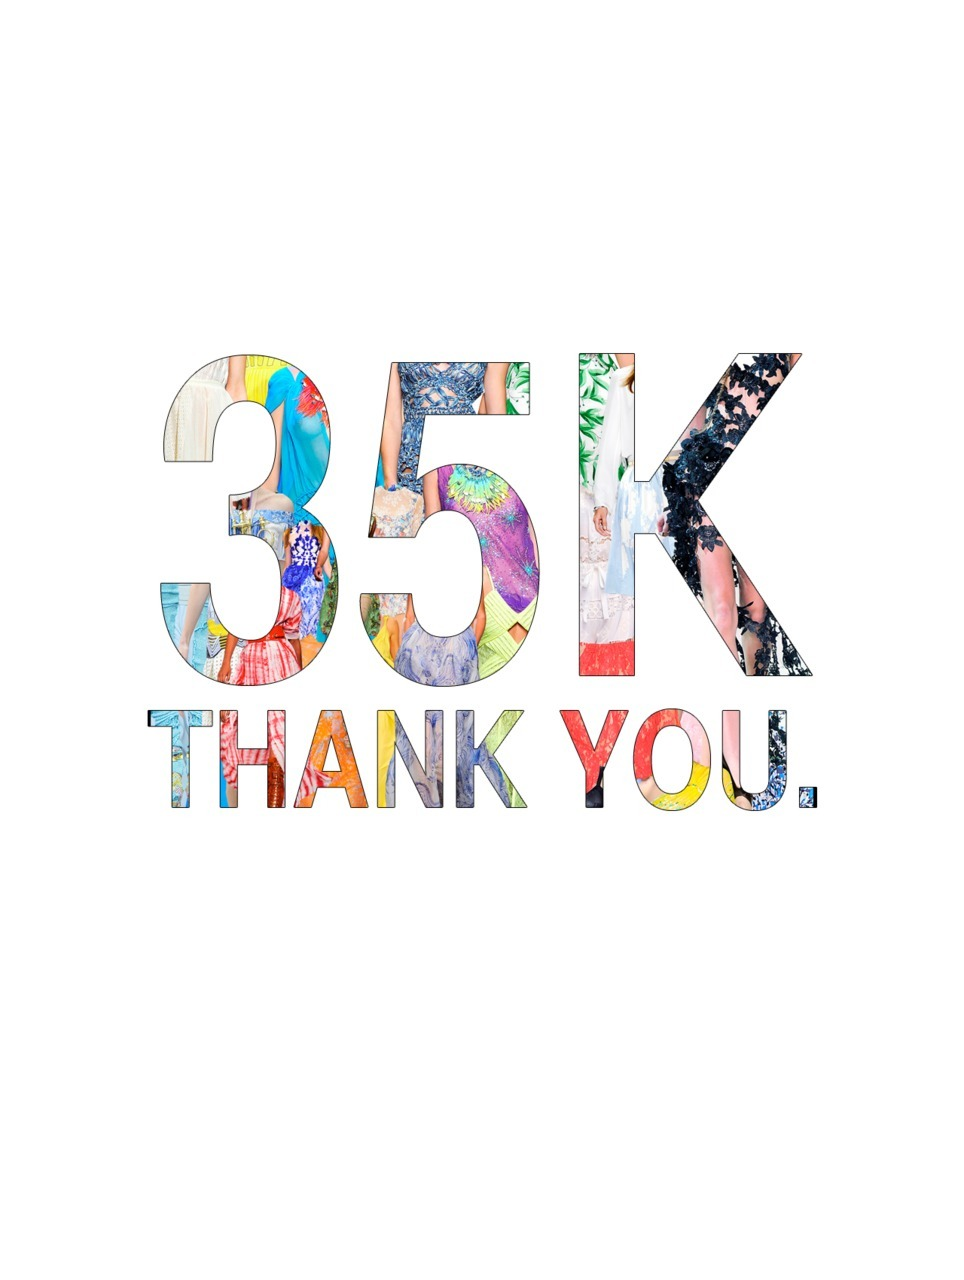 Hit 35,000 followers today. Thanks everybody.